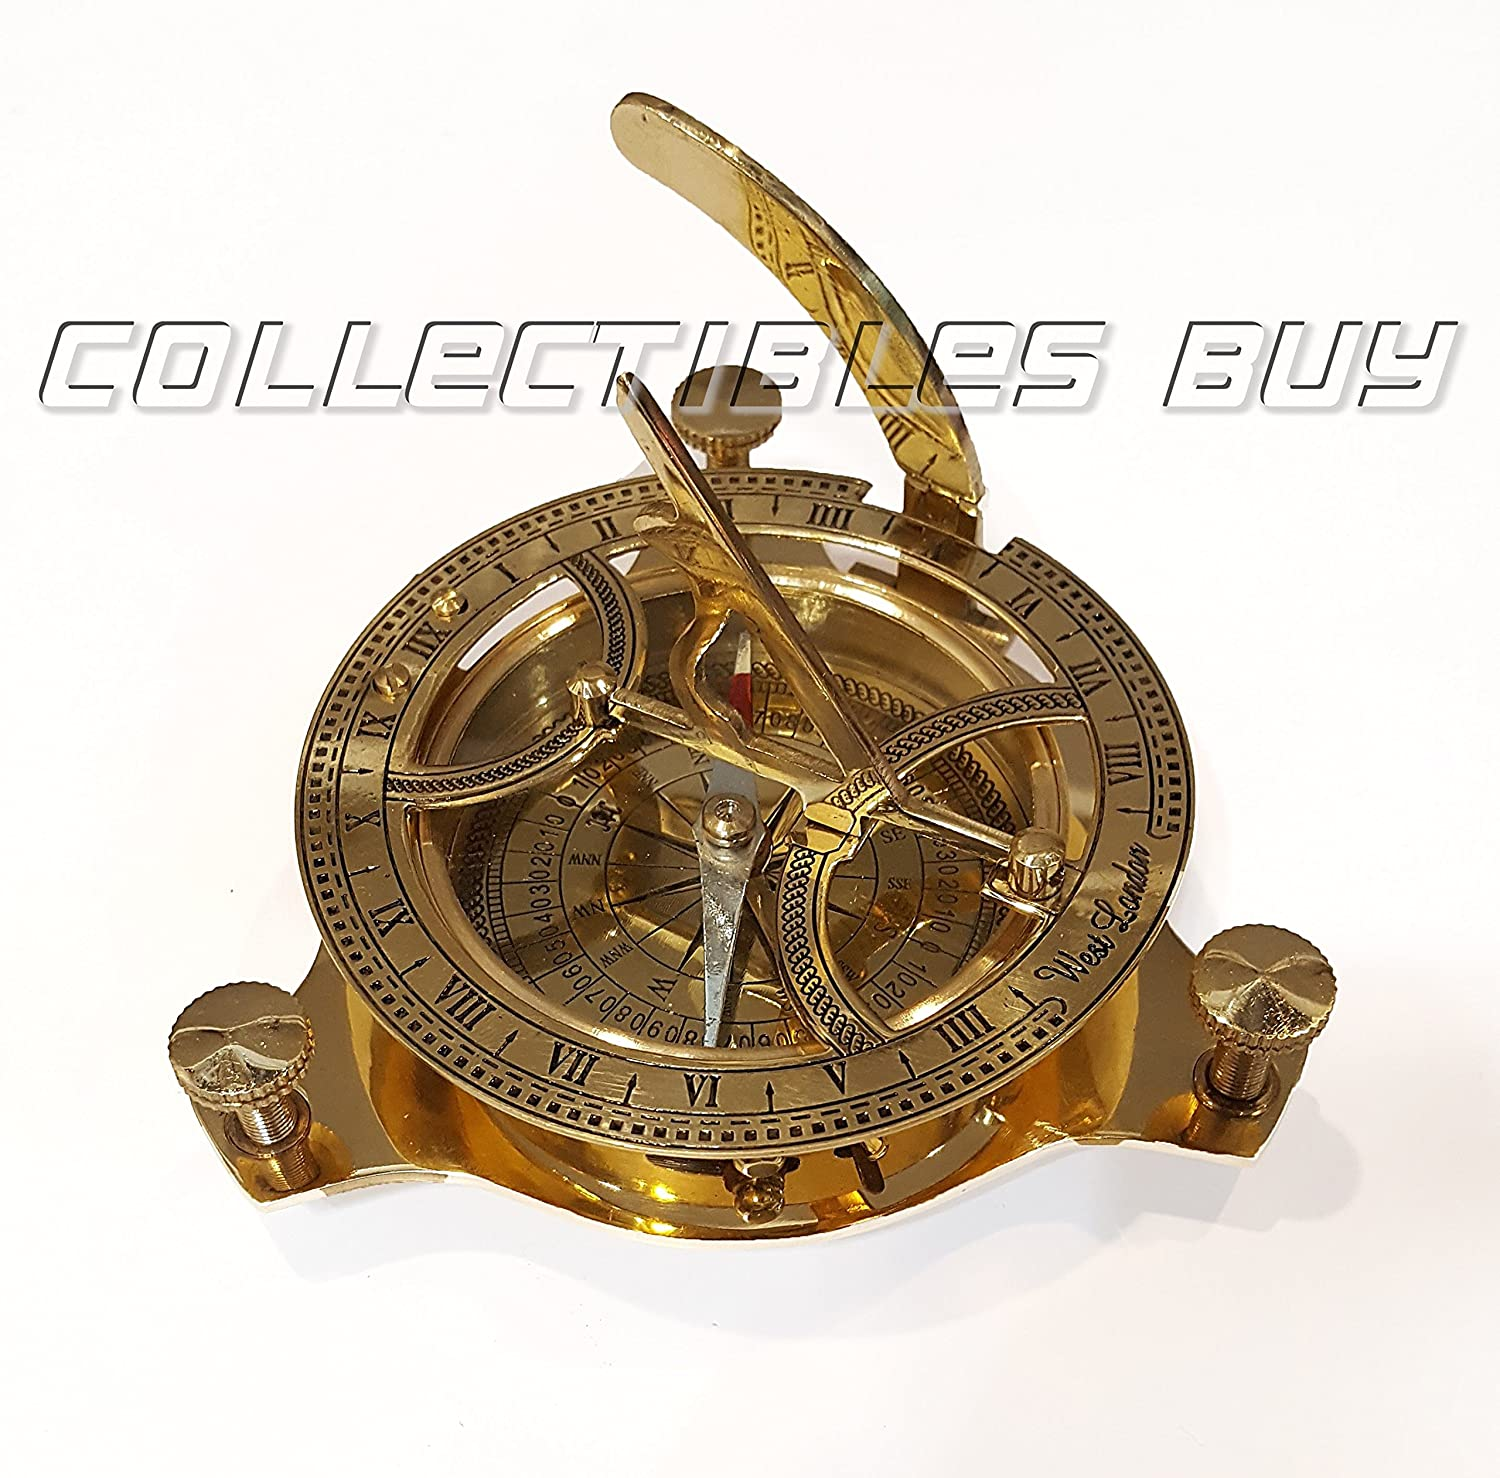 Marine Navigational Compass Shiny Brass Sundial Compass Three Leg Boat Model Collectibles Buy ZCO394